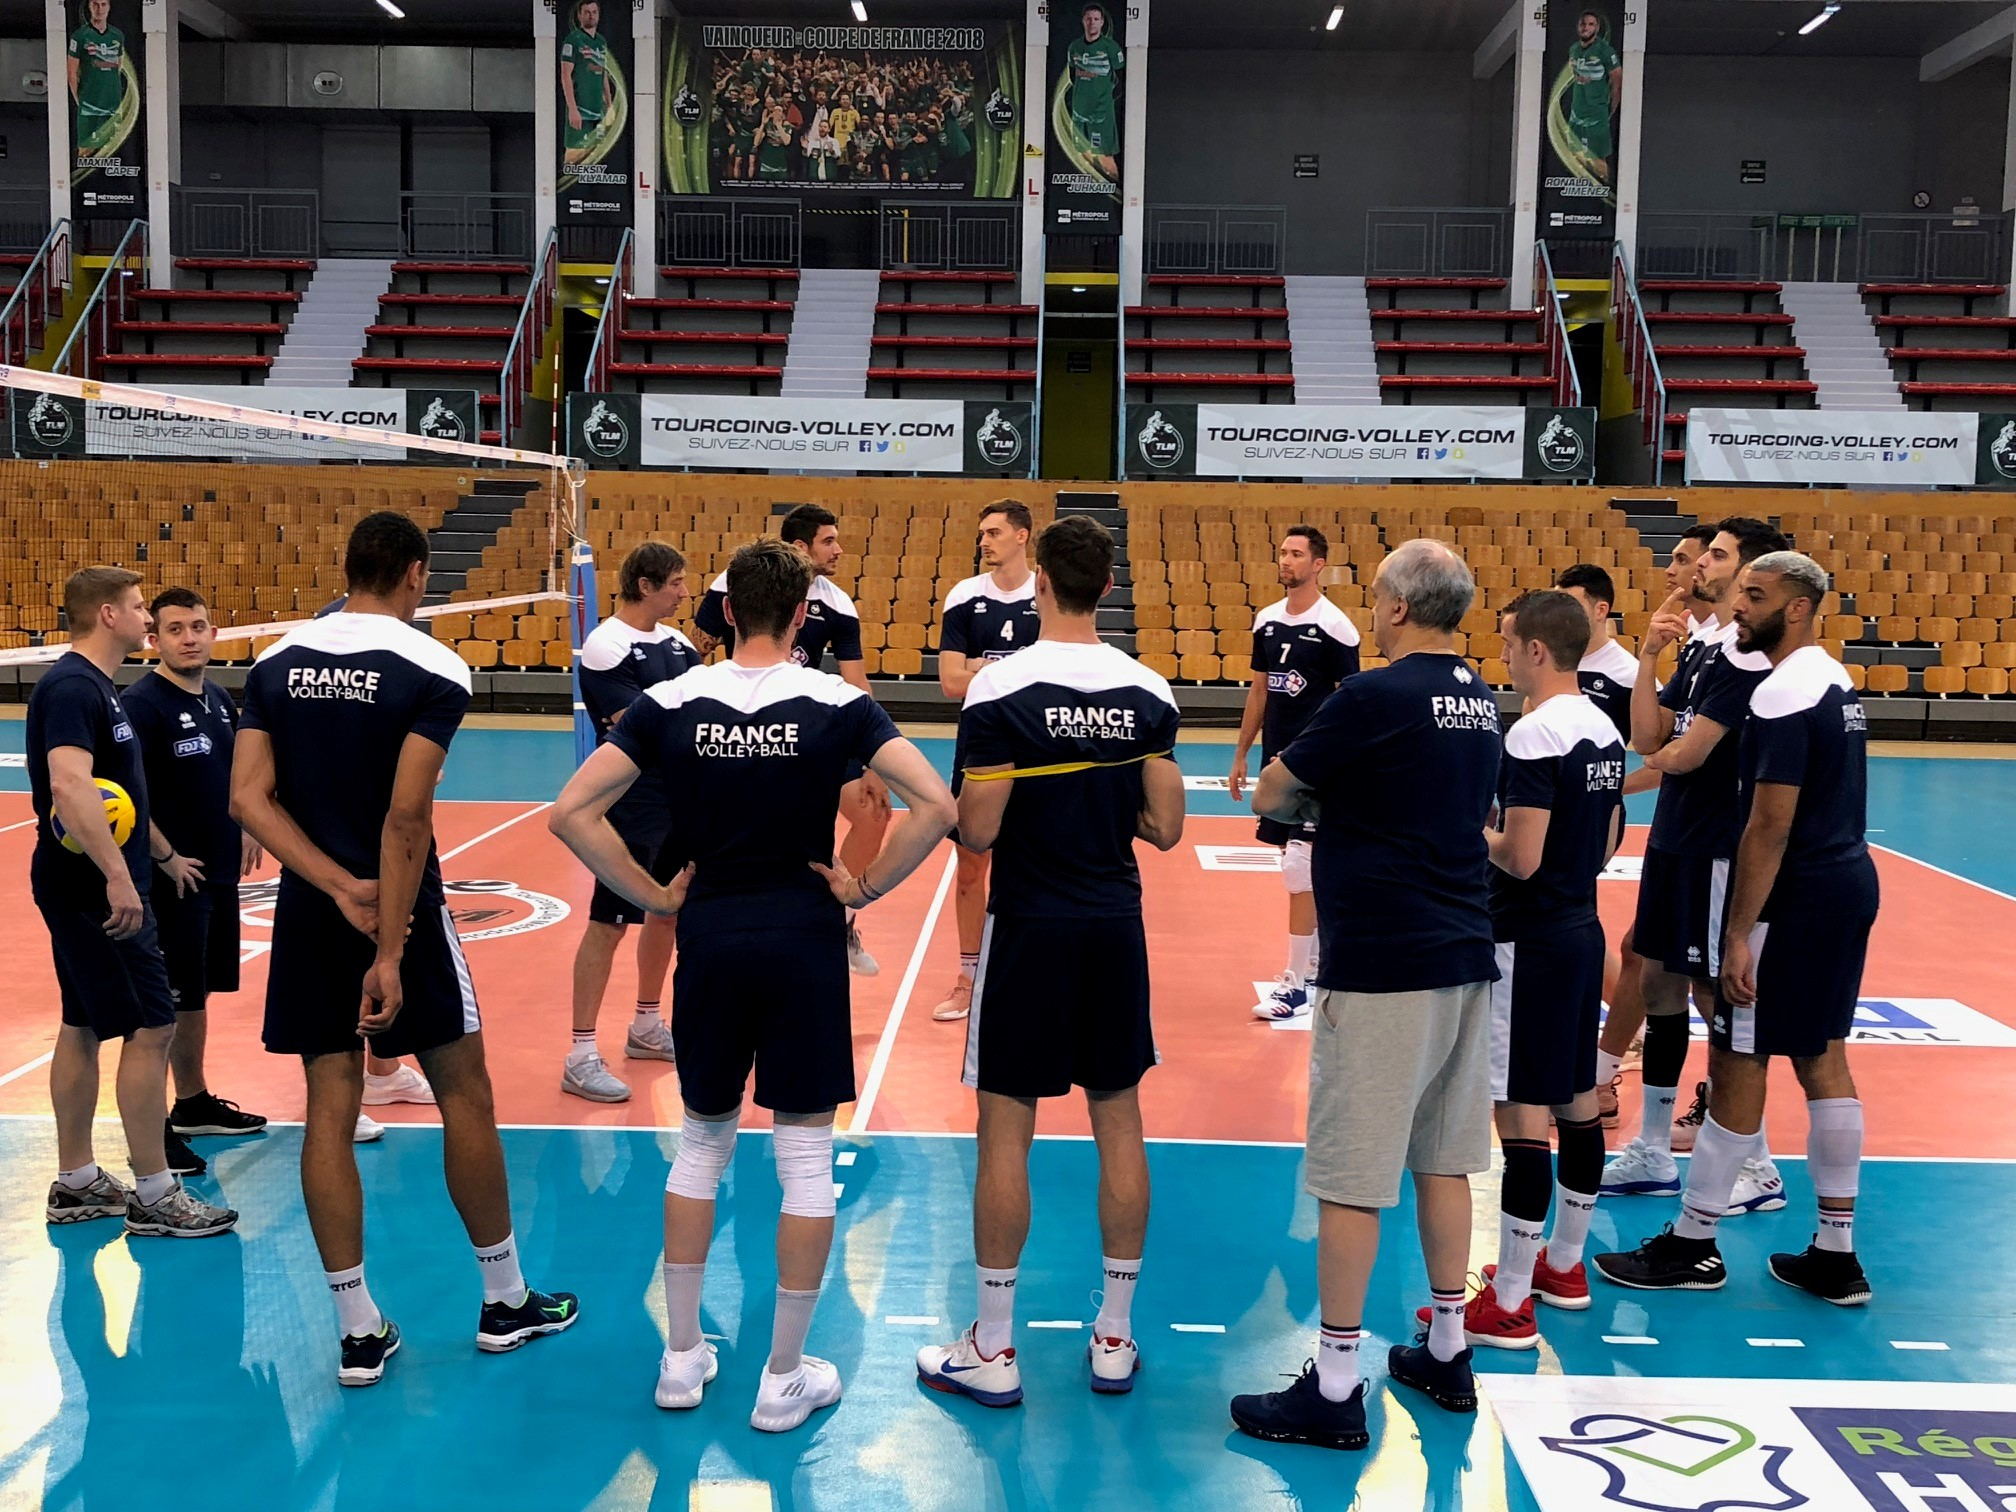 L'équipe de France Volley, lors d'un entraînement (photo : FF Volley).